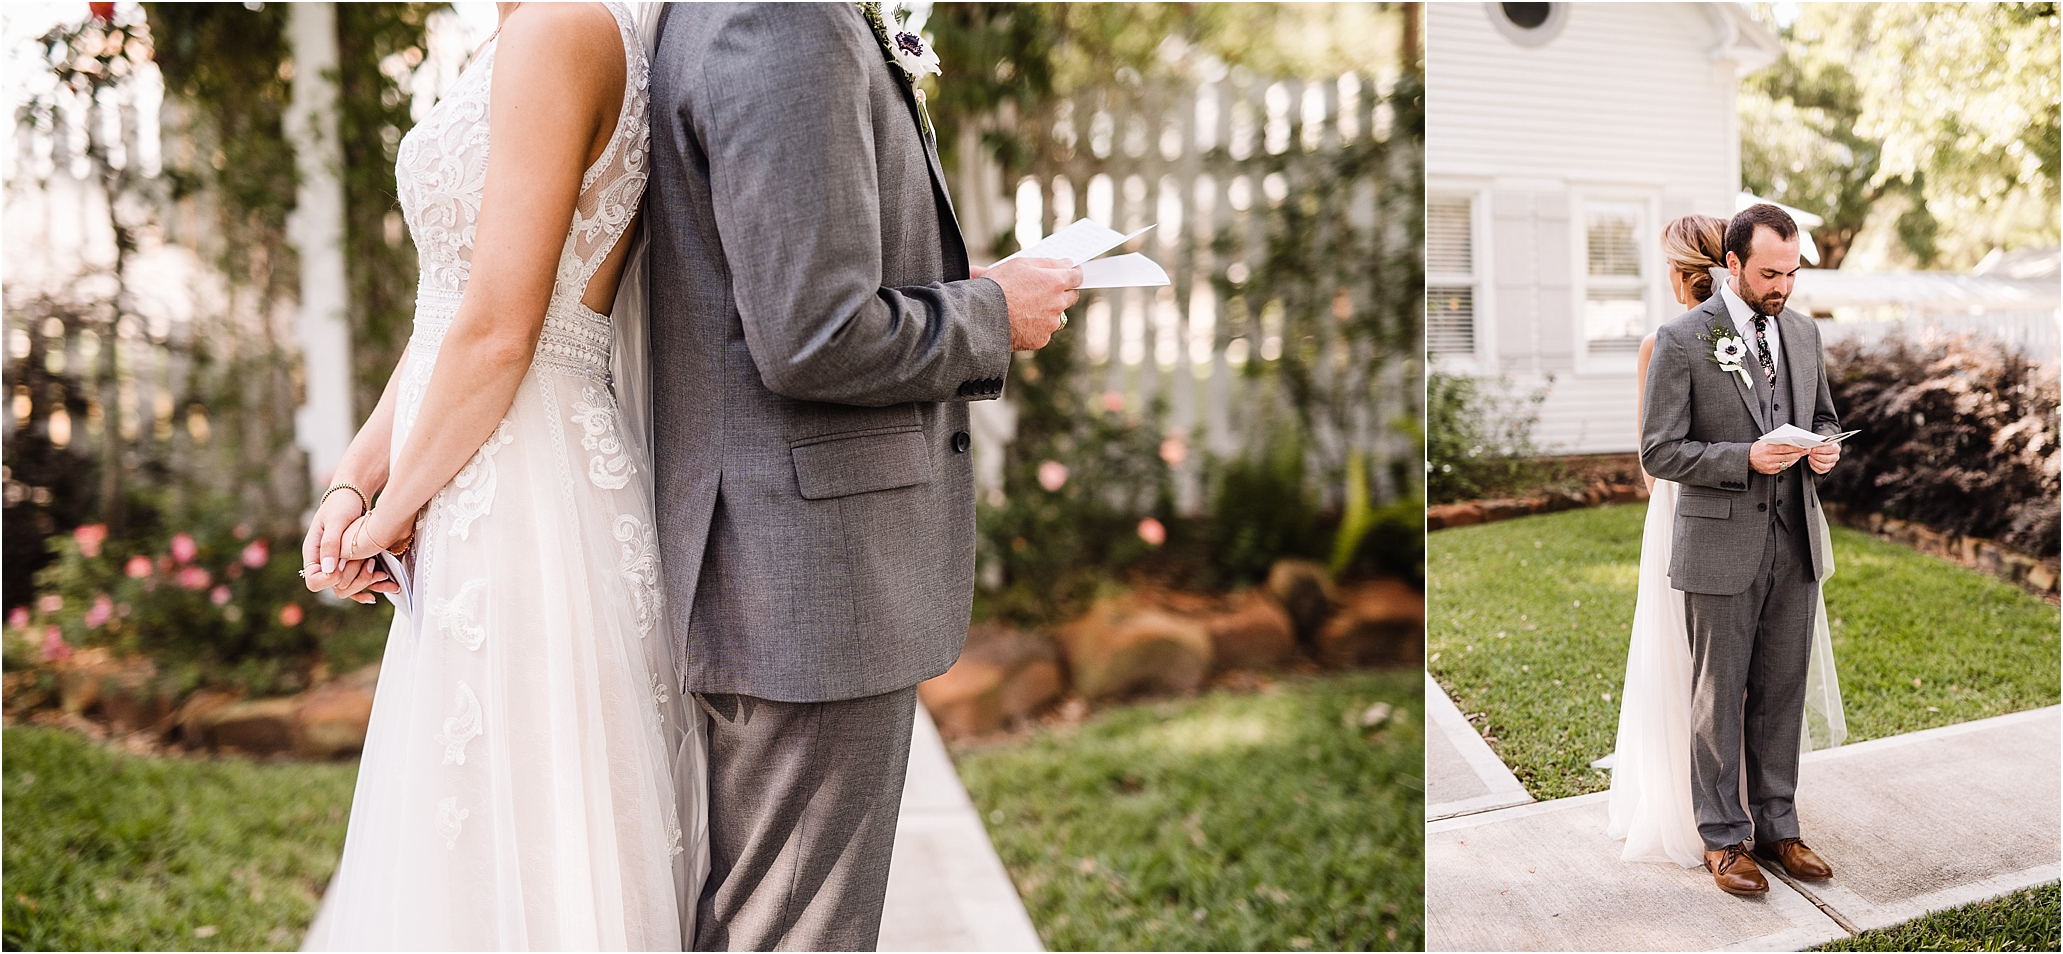 PattisonHouse_TexasWeddingPhotographer_CarlyCrockett&MattBrownWedding_0058.jpg